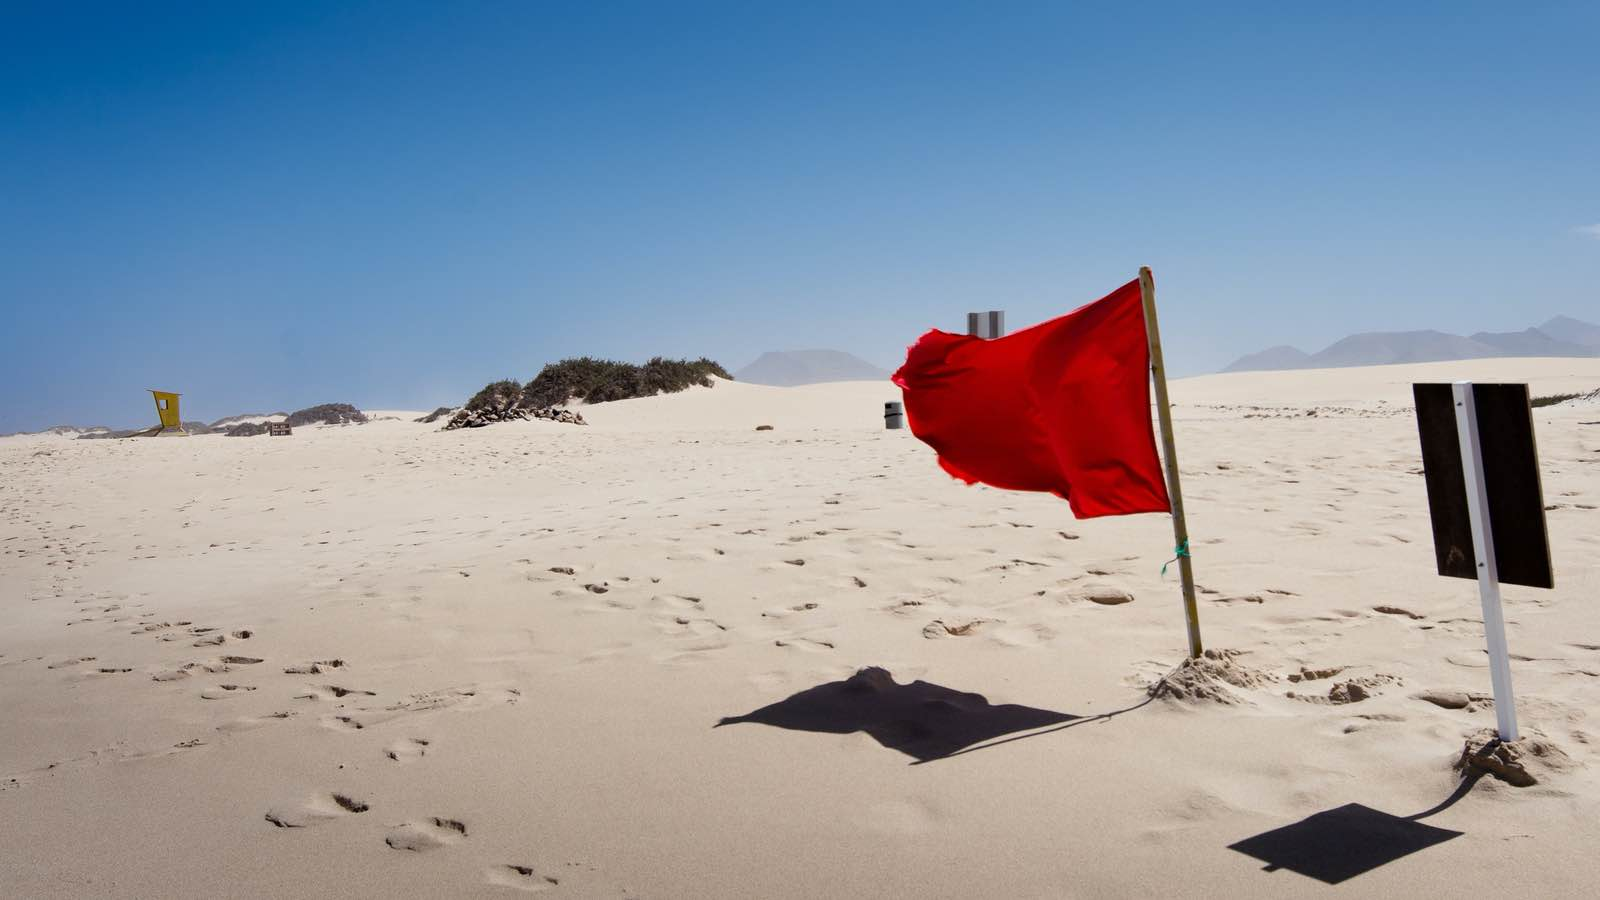 An Introduction to Red Flags - Learn how to use red flags effectively when considering serious pathologies as a differential diagnosis